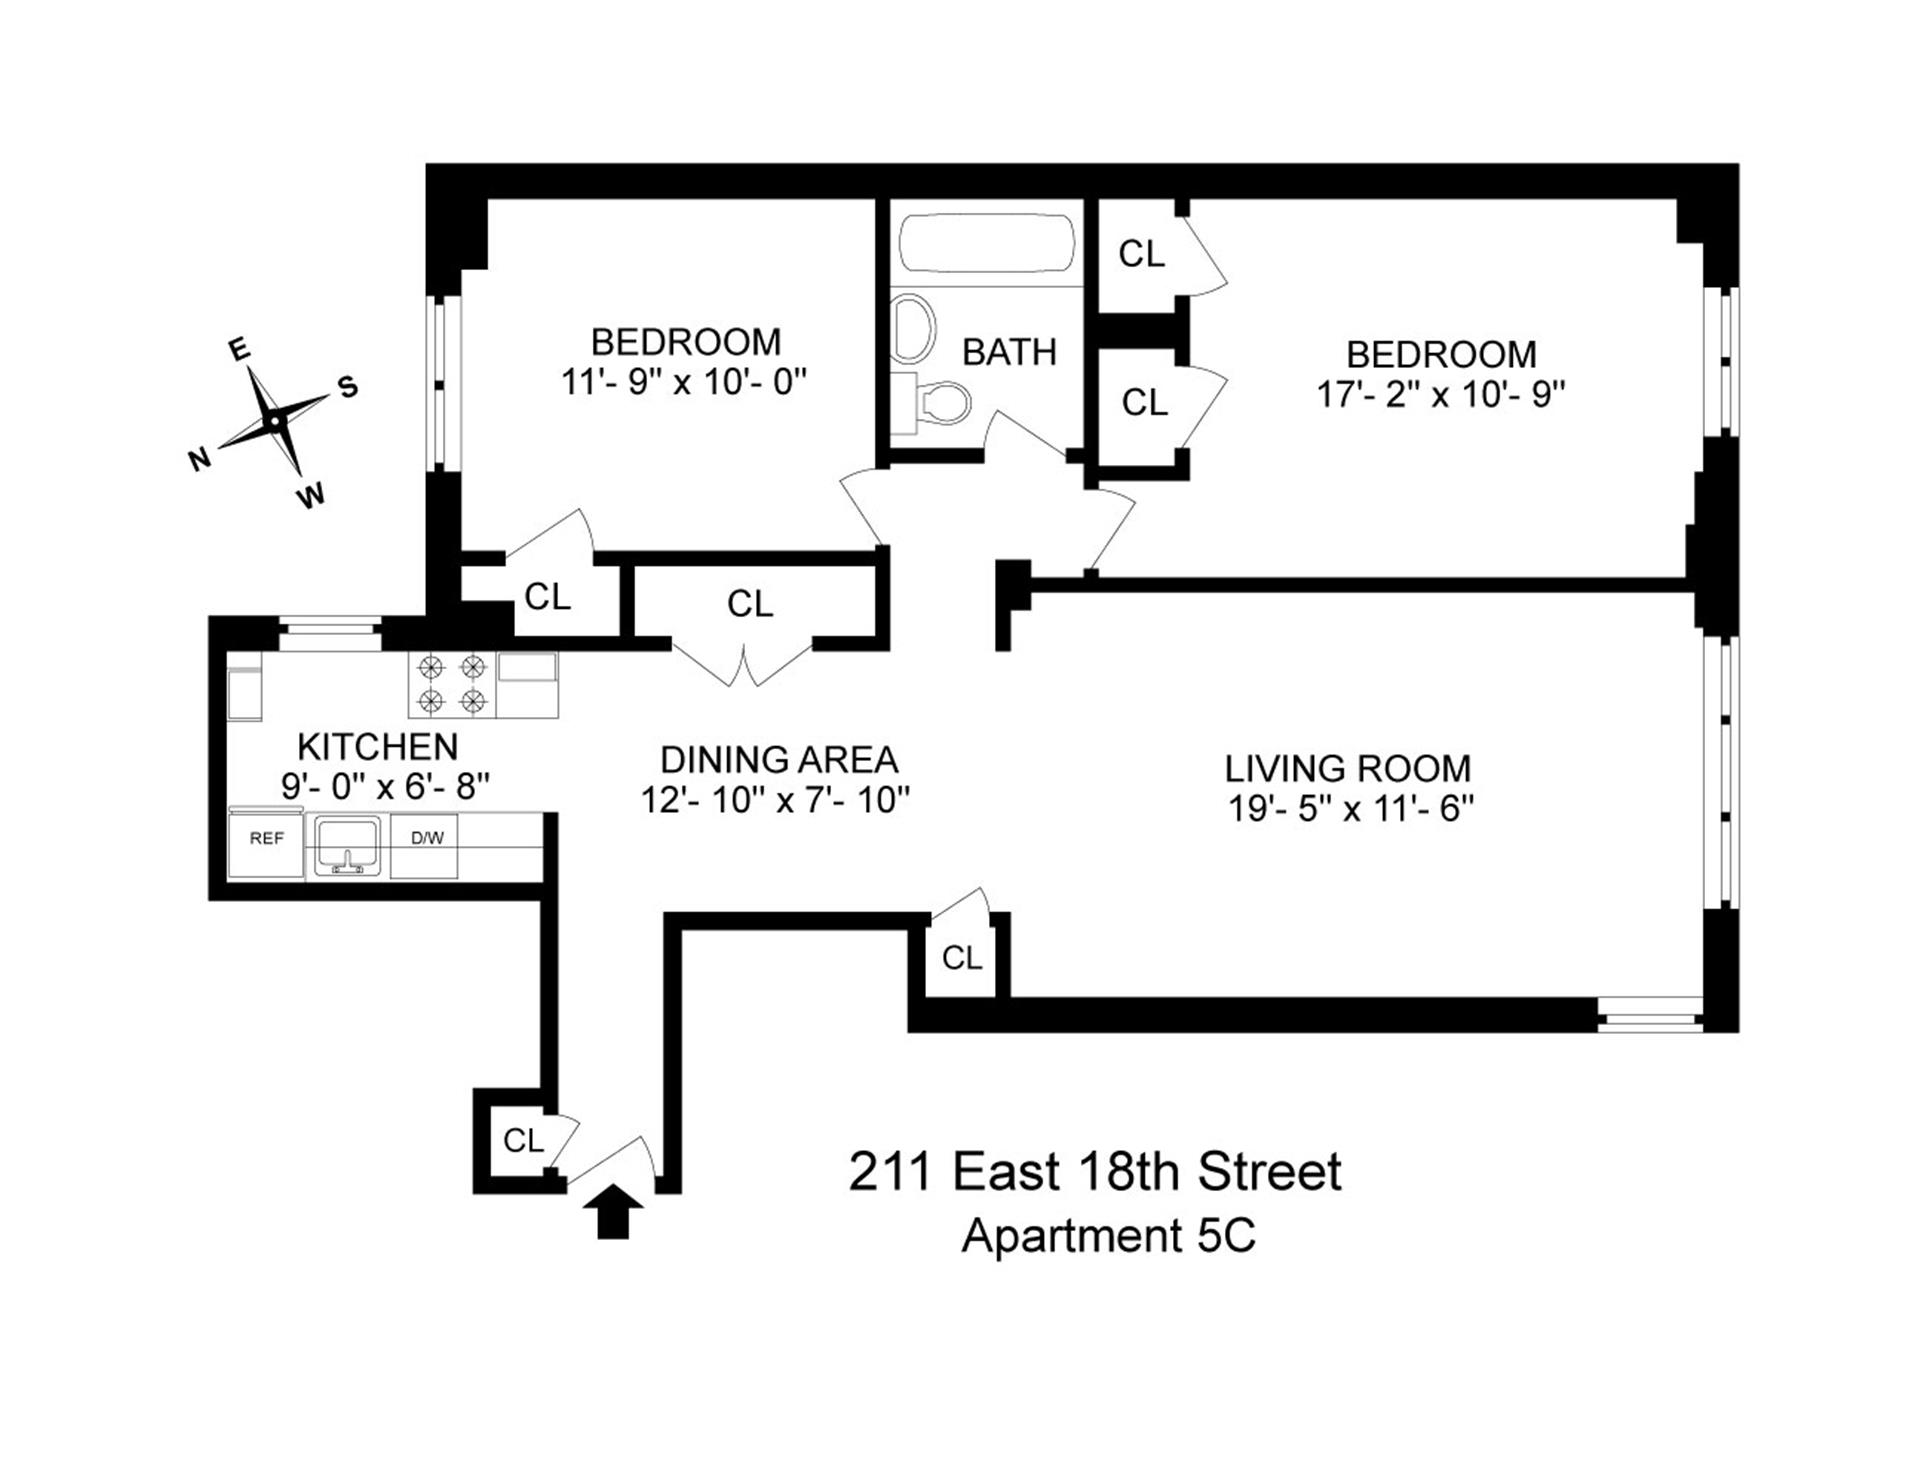 Floor plan of 211 East 18 St Owners Inc, 211 East 18th Street, 5C - Gramercy - Union Square, New York